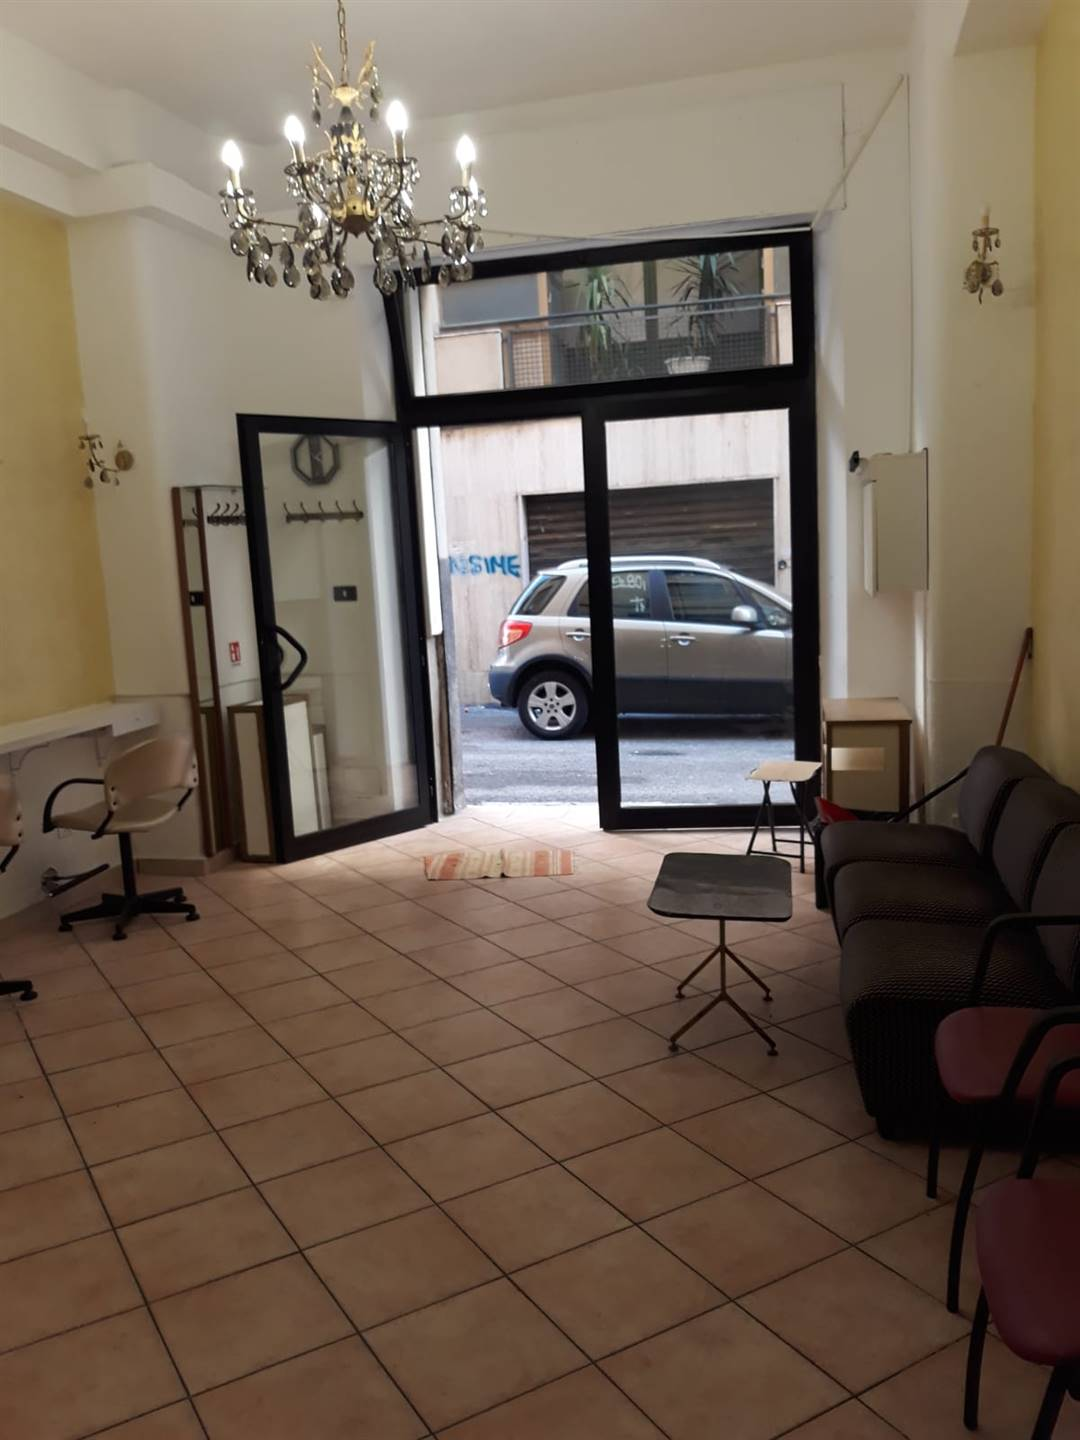 VIA MONTESANTO, COSENZA, Commercialproperty for rent of 60 Sq. mt., composed by: 1 Room, 1 Bathroom, Price: € 400